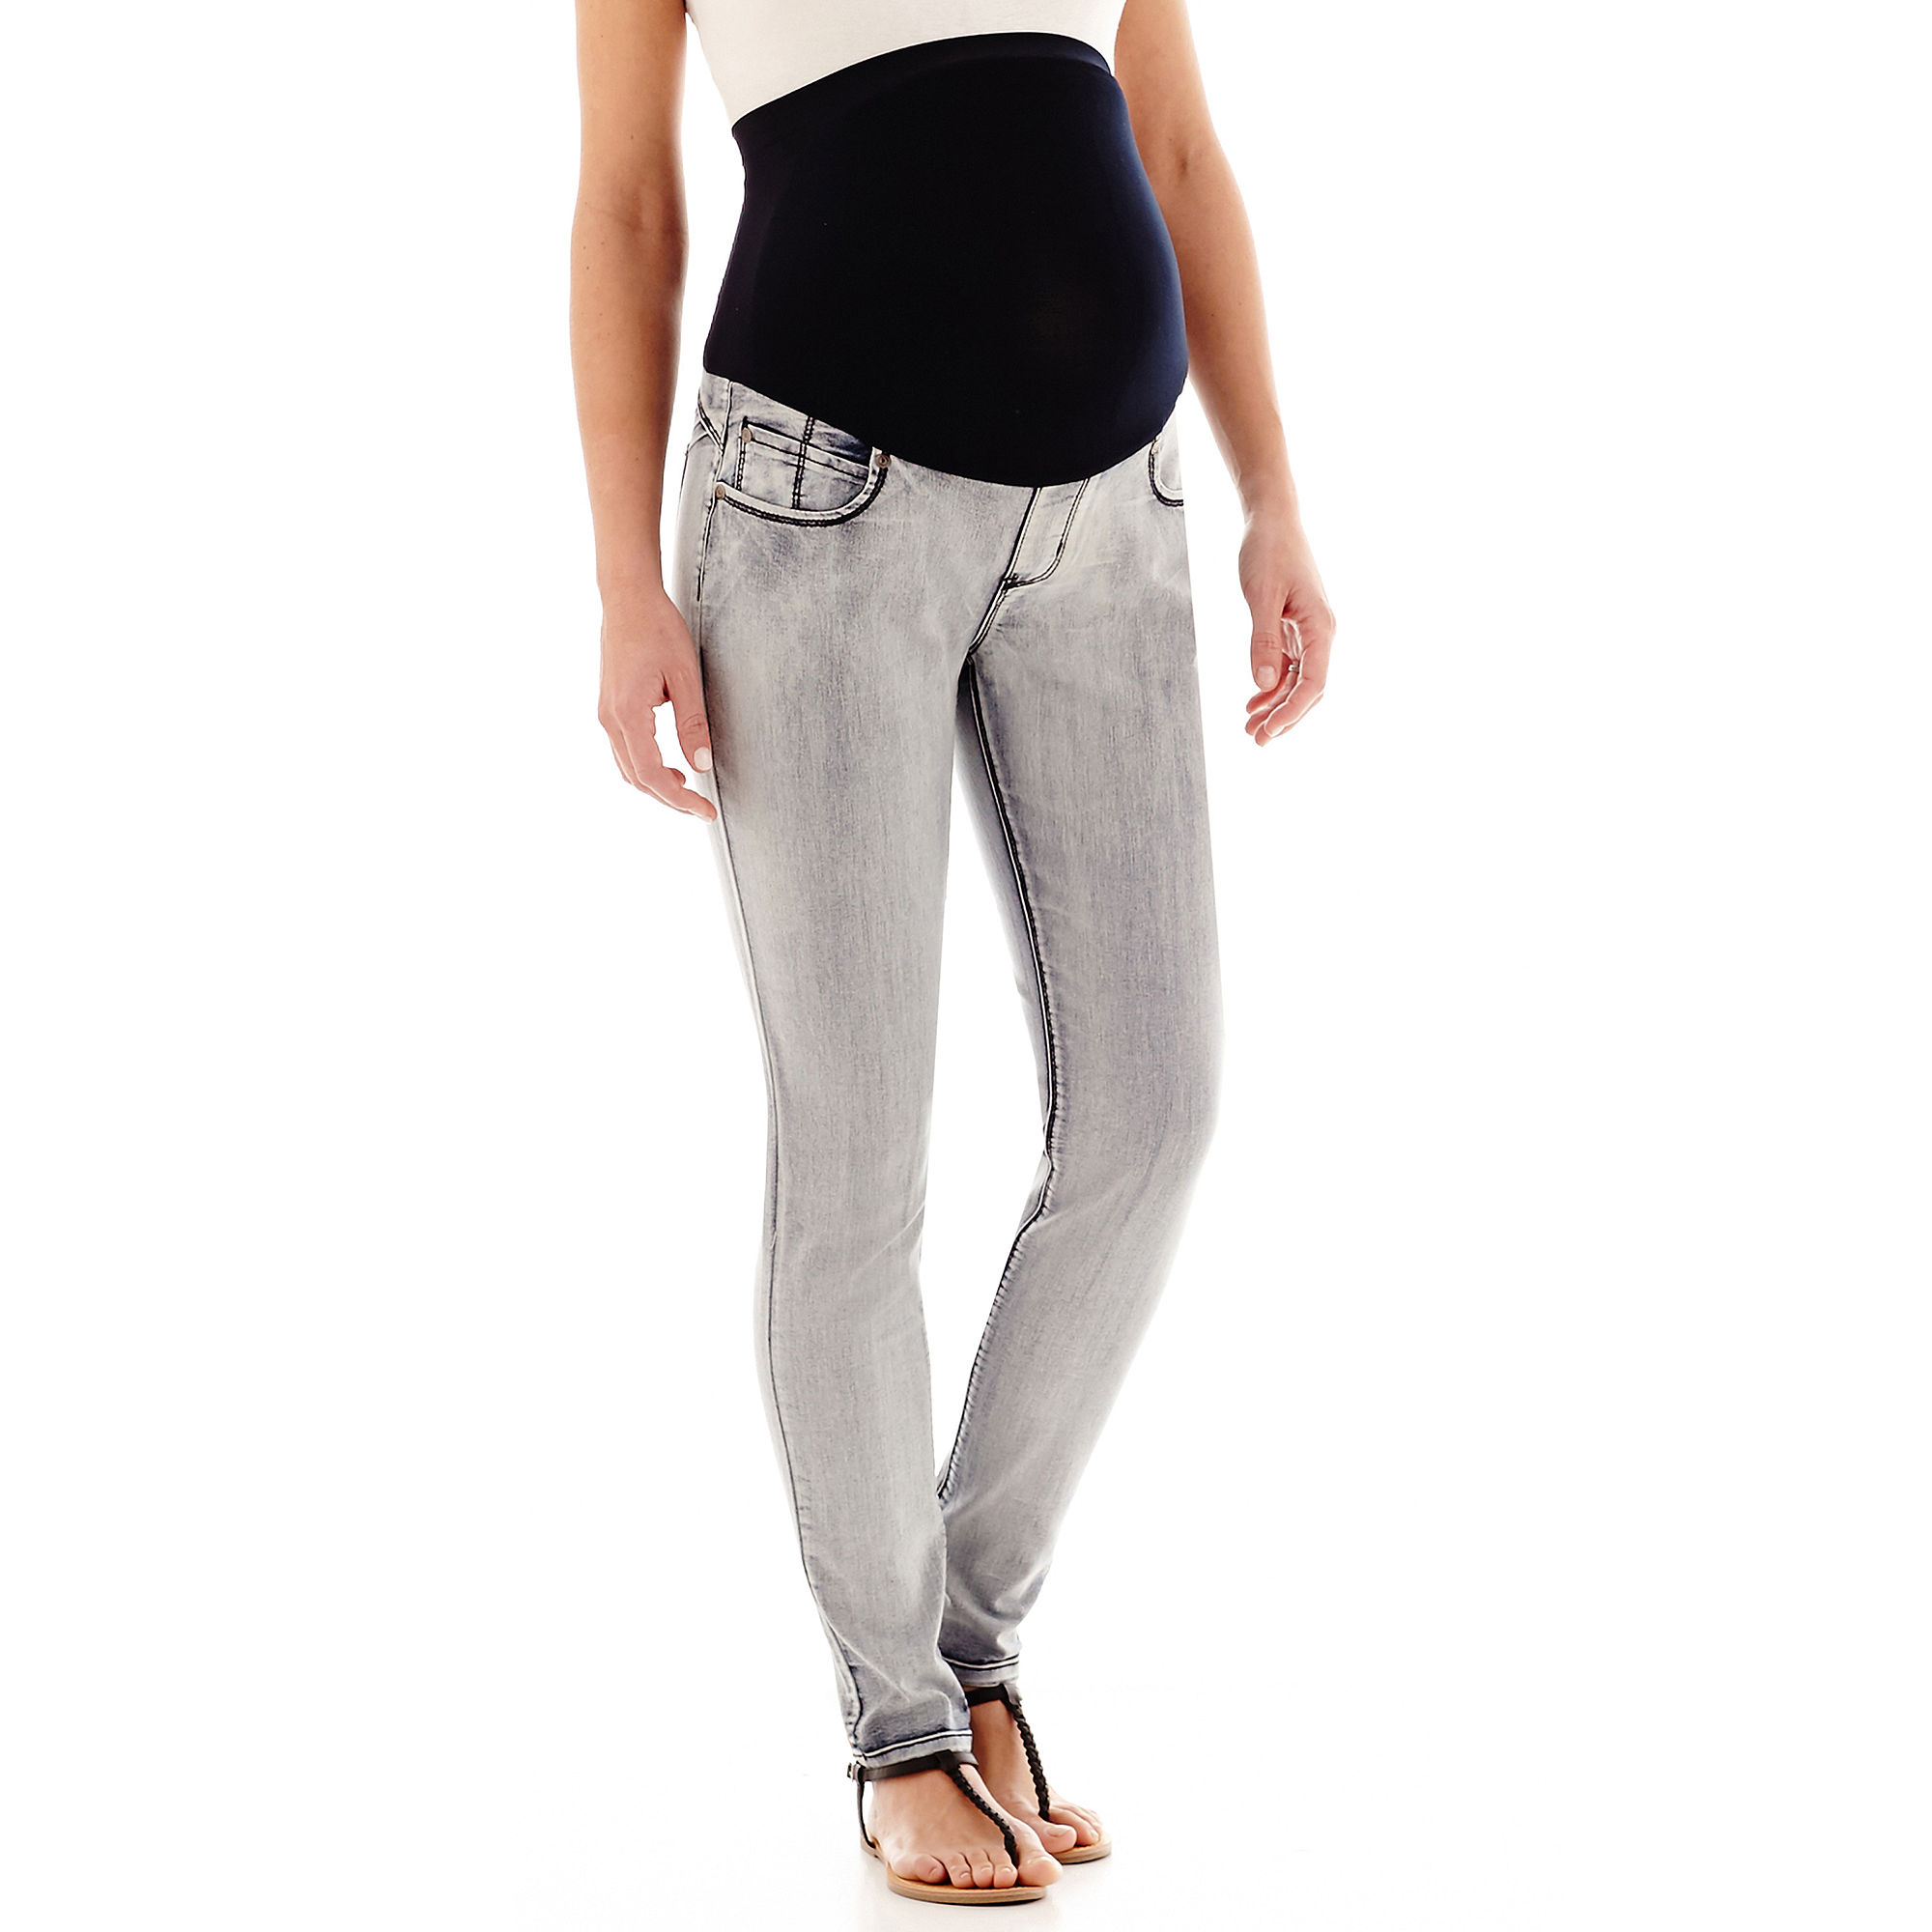 Tala Maternity Overbelly Butt-Lifting Skinny Jeans